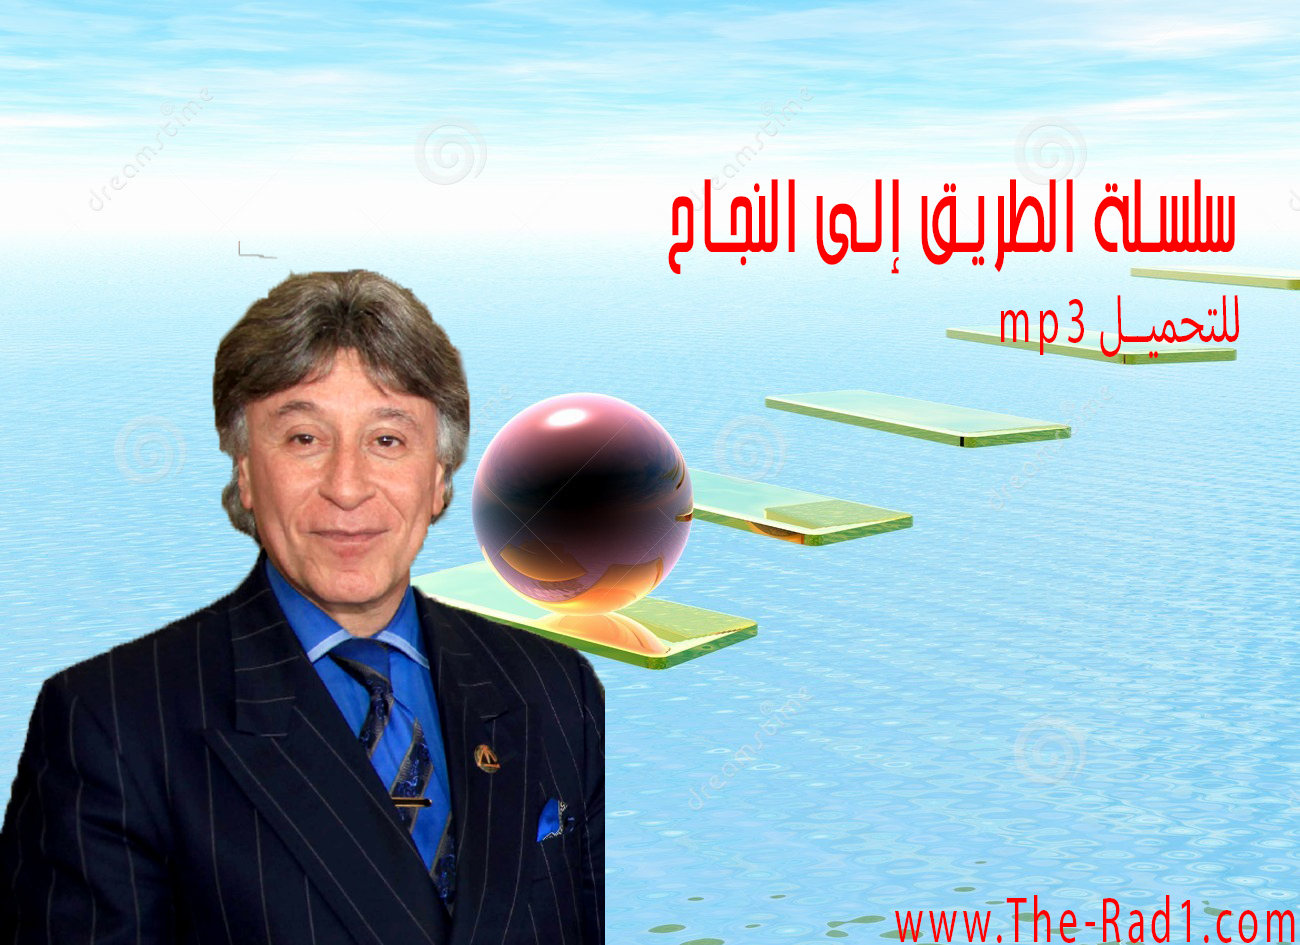 ibrahim elfiky mp3